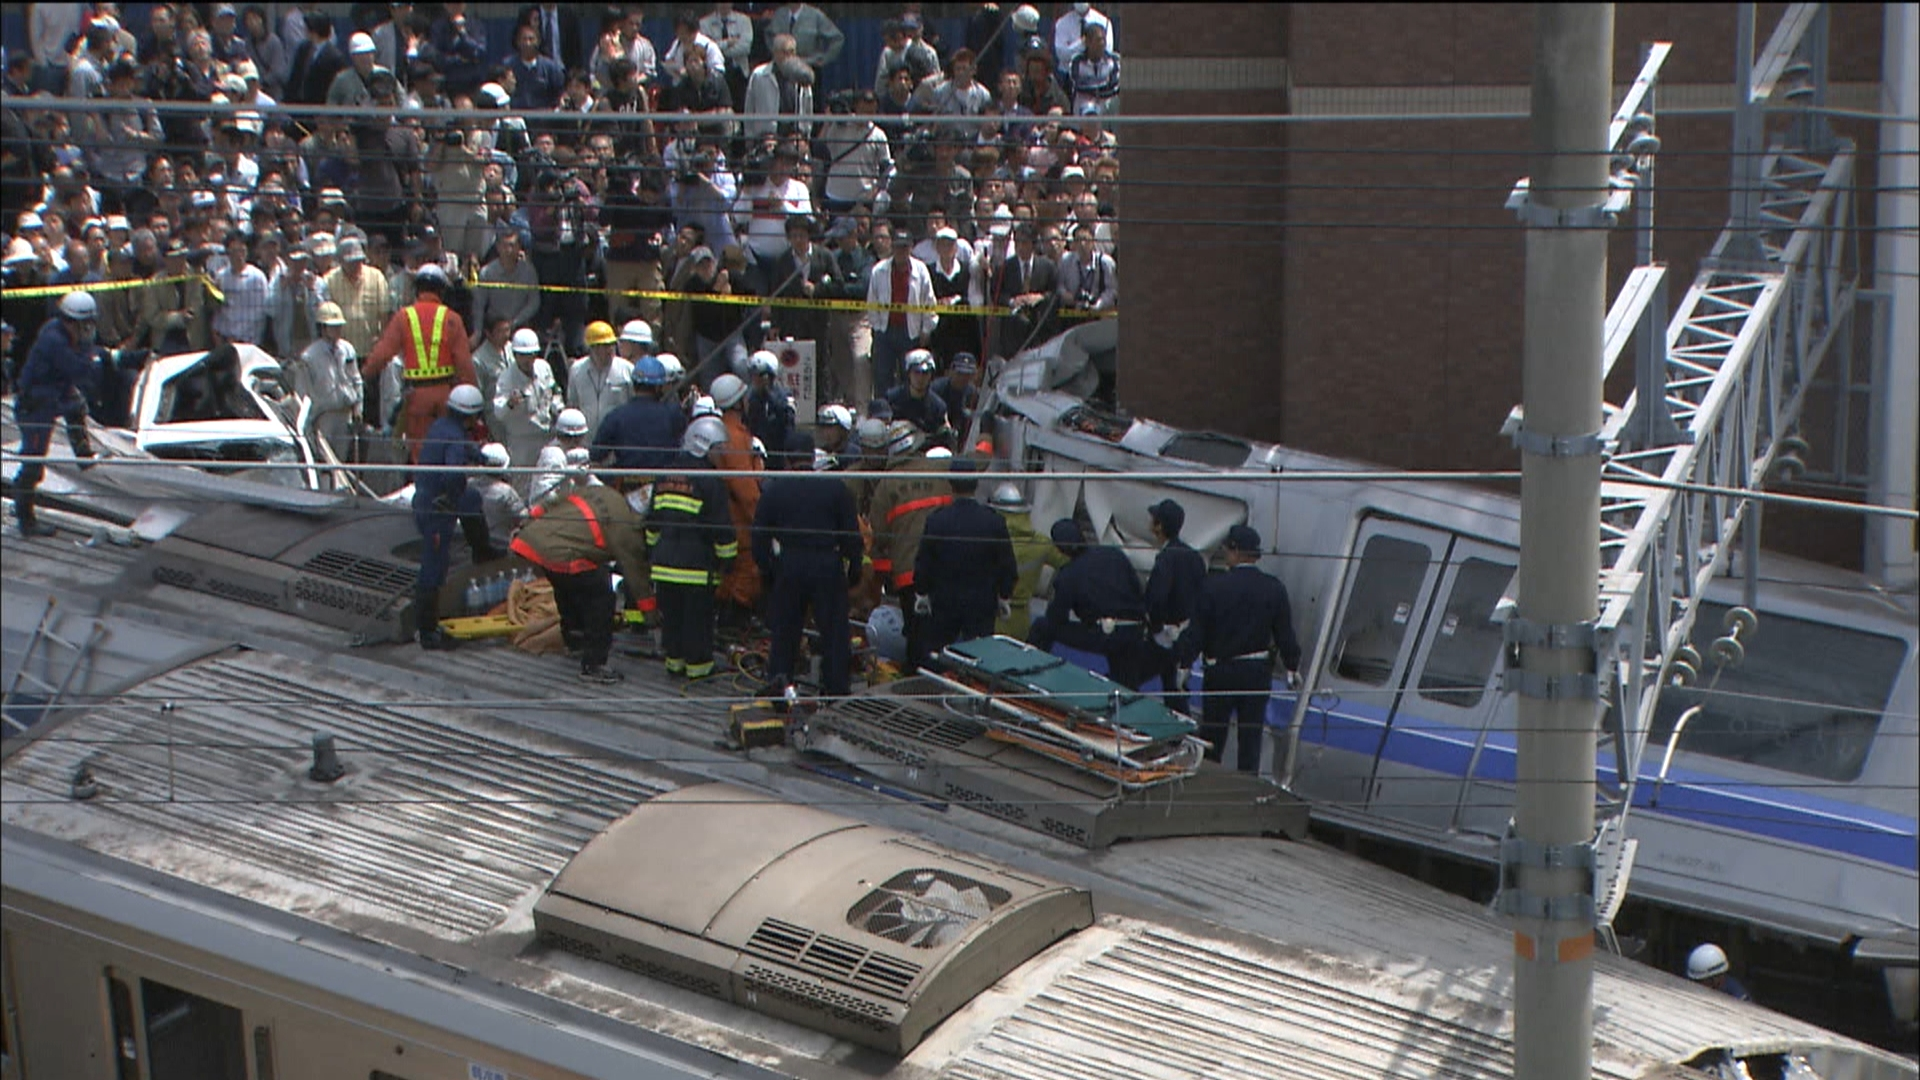 Brakeless still no 11 train crash and emergency services mid close up.jpg